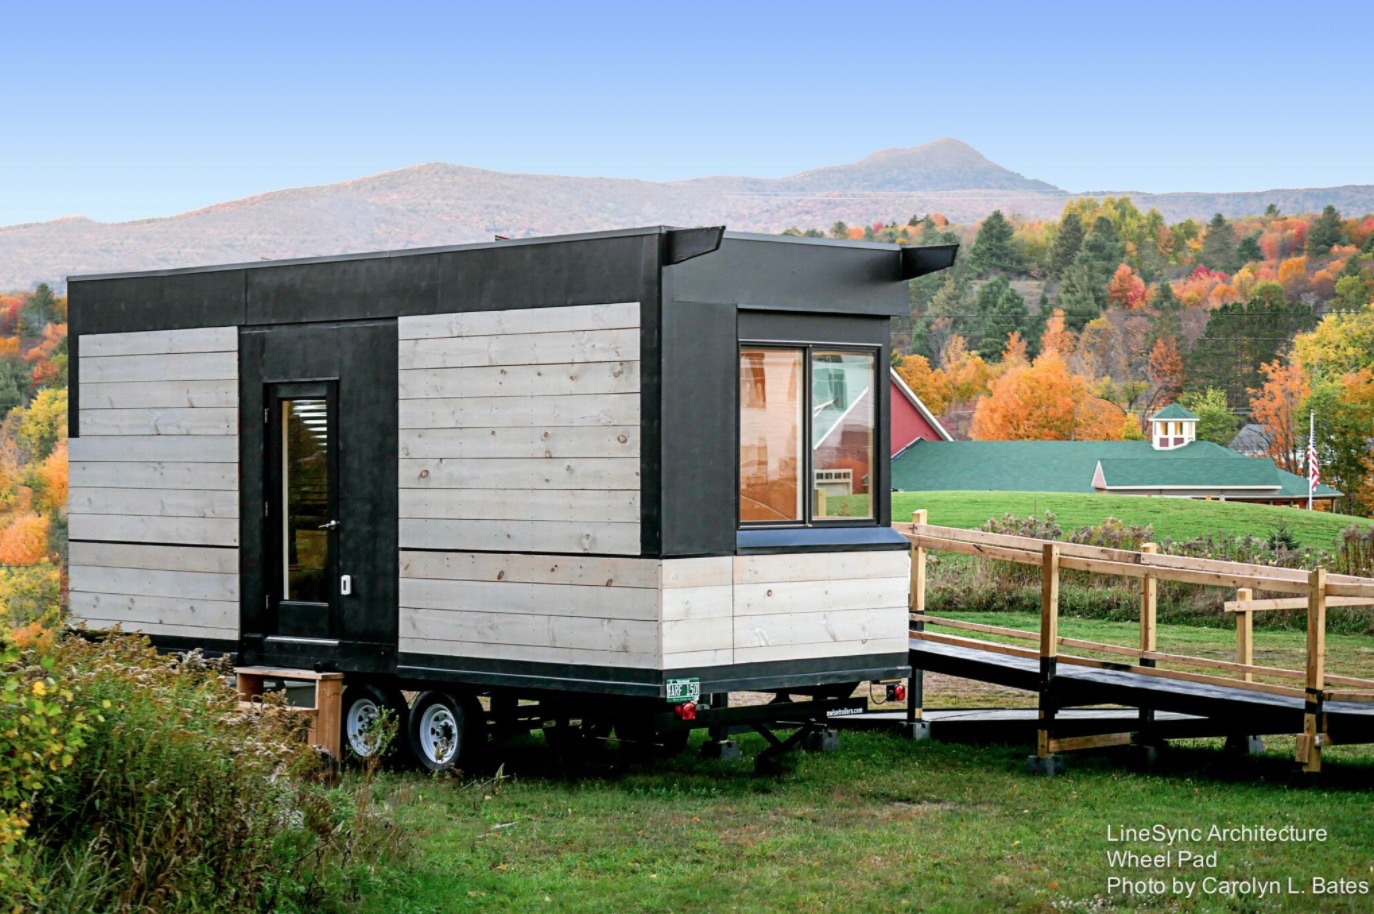 The Wheel Pad Tiny Home on Wheels thats Wheelchair Friendly